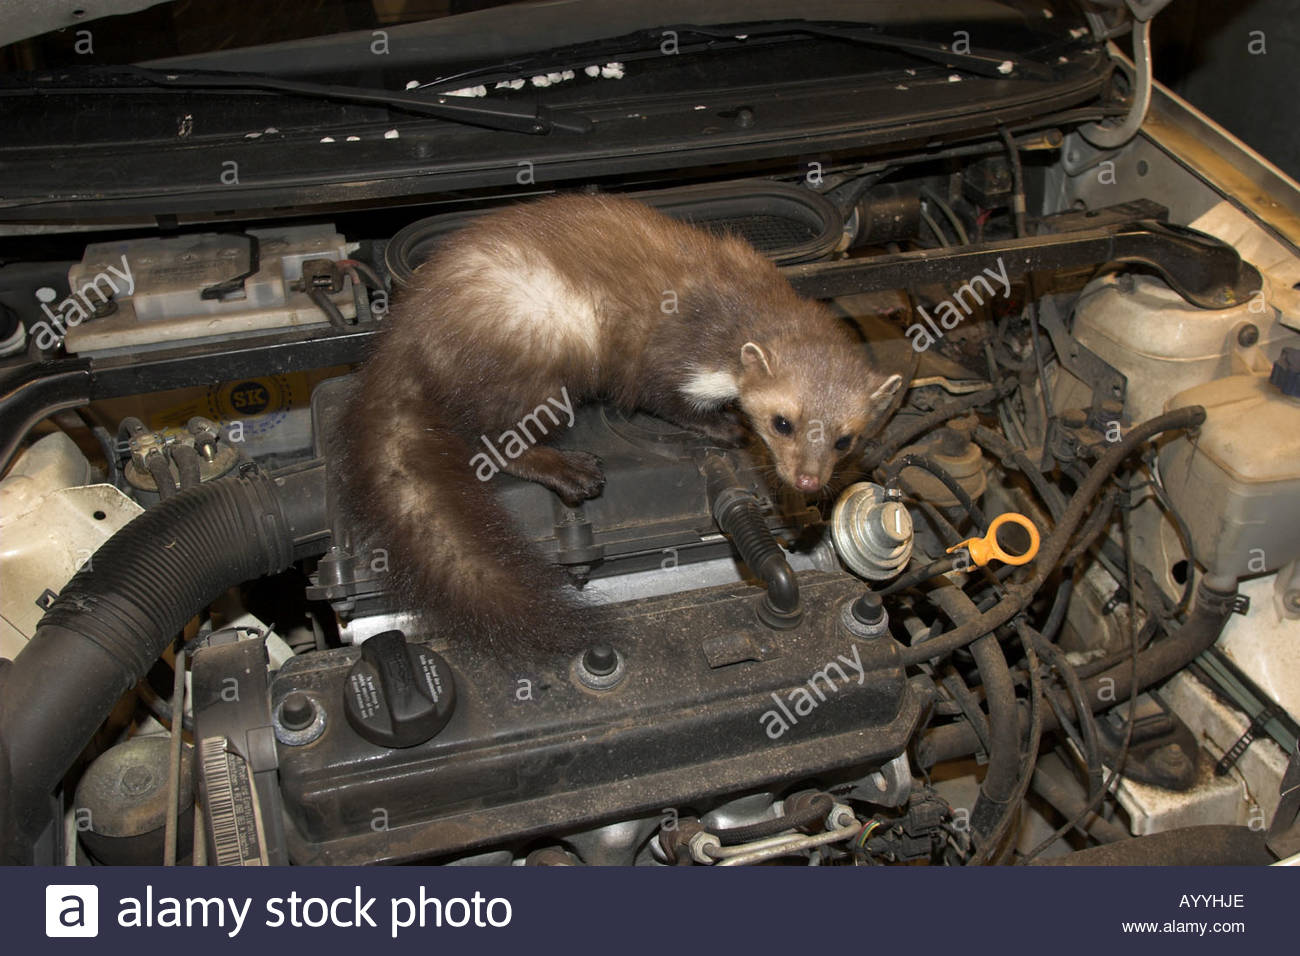 beech marten stone marte martes foina in the engine compartment stock photo 9832429 alamy. Black Bedroom Furniture Sets. Home Design Ideas